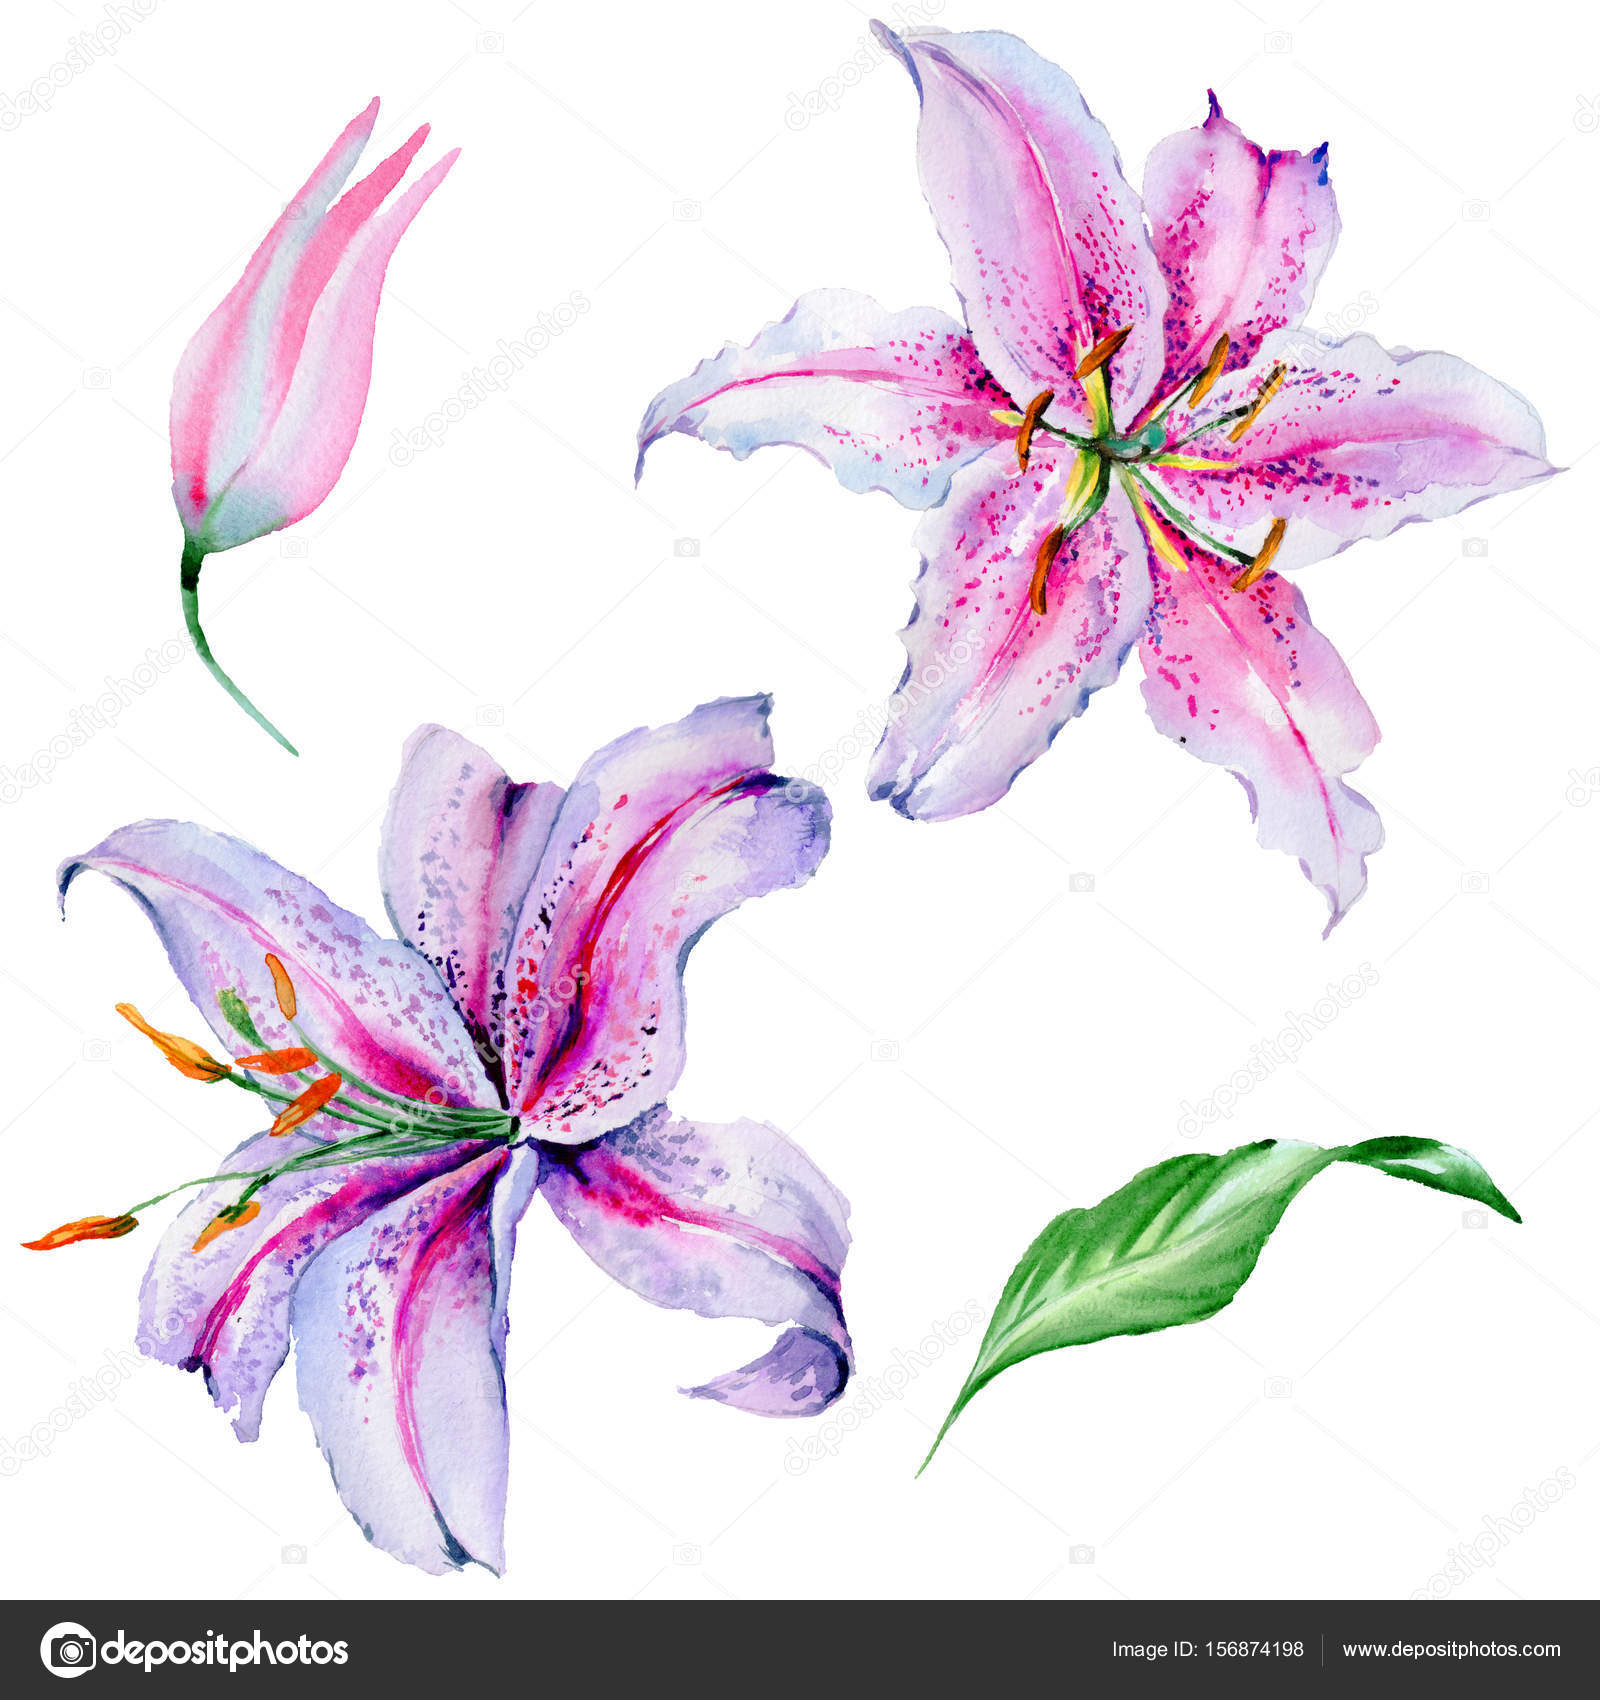 Wildflower lily flower in a watercolor style isolated stock photo wildflower lily flower in a watercolor style isolated stock photo izmirmasajfo Choice Image